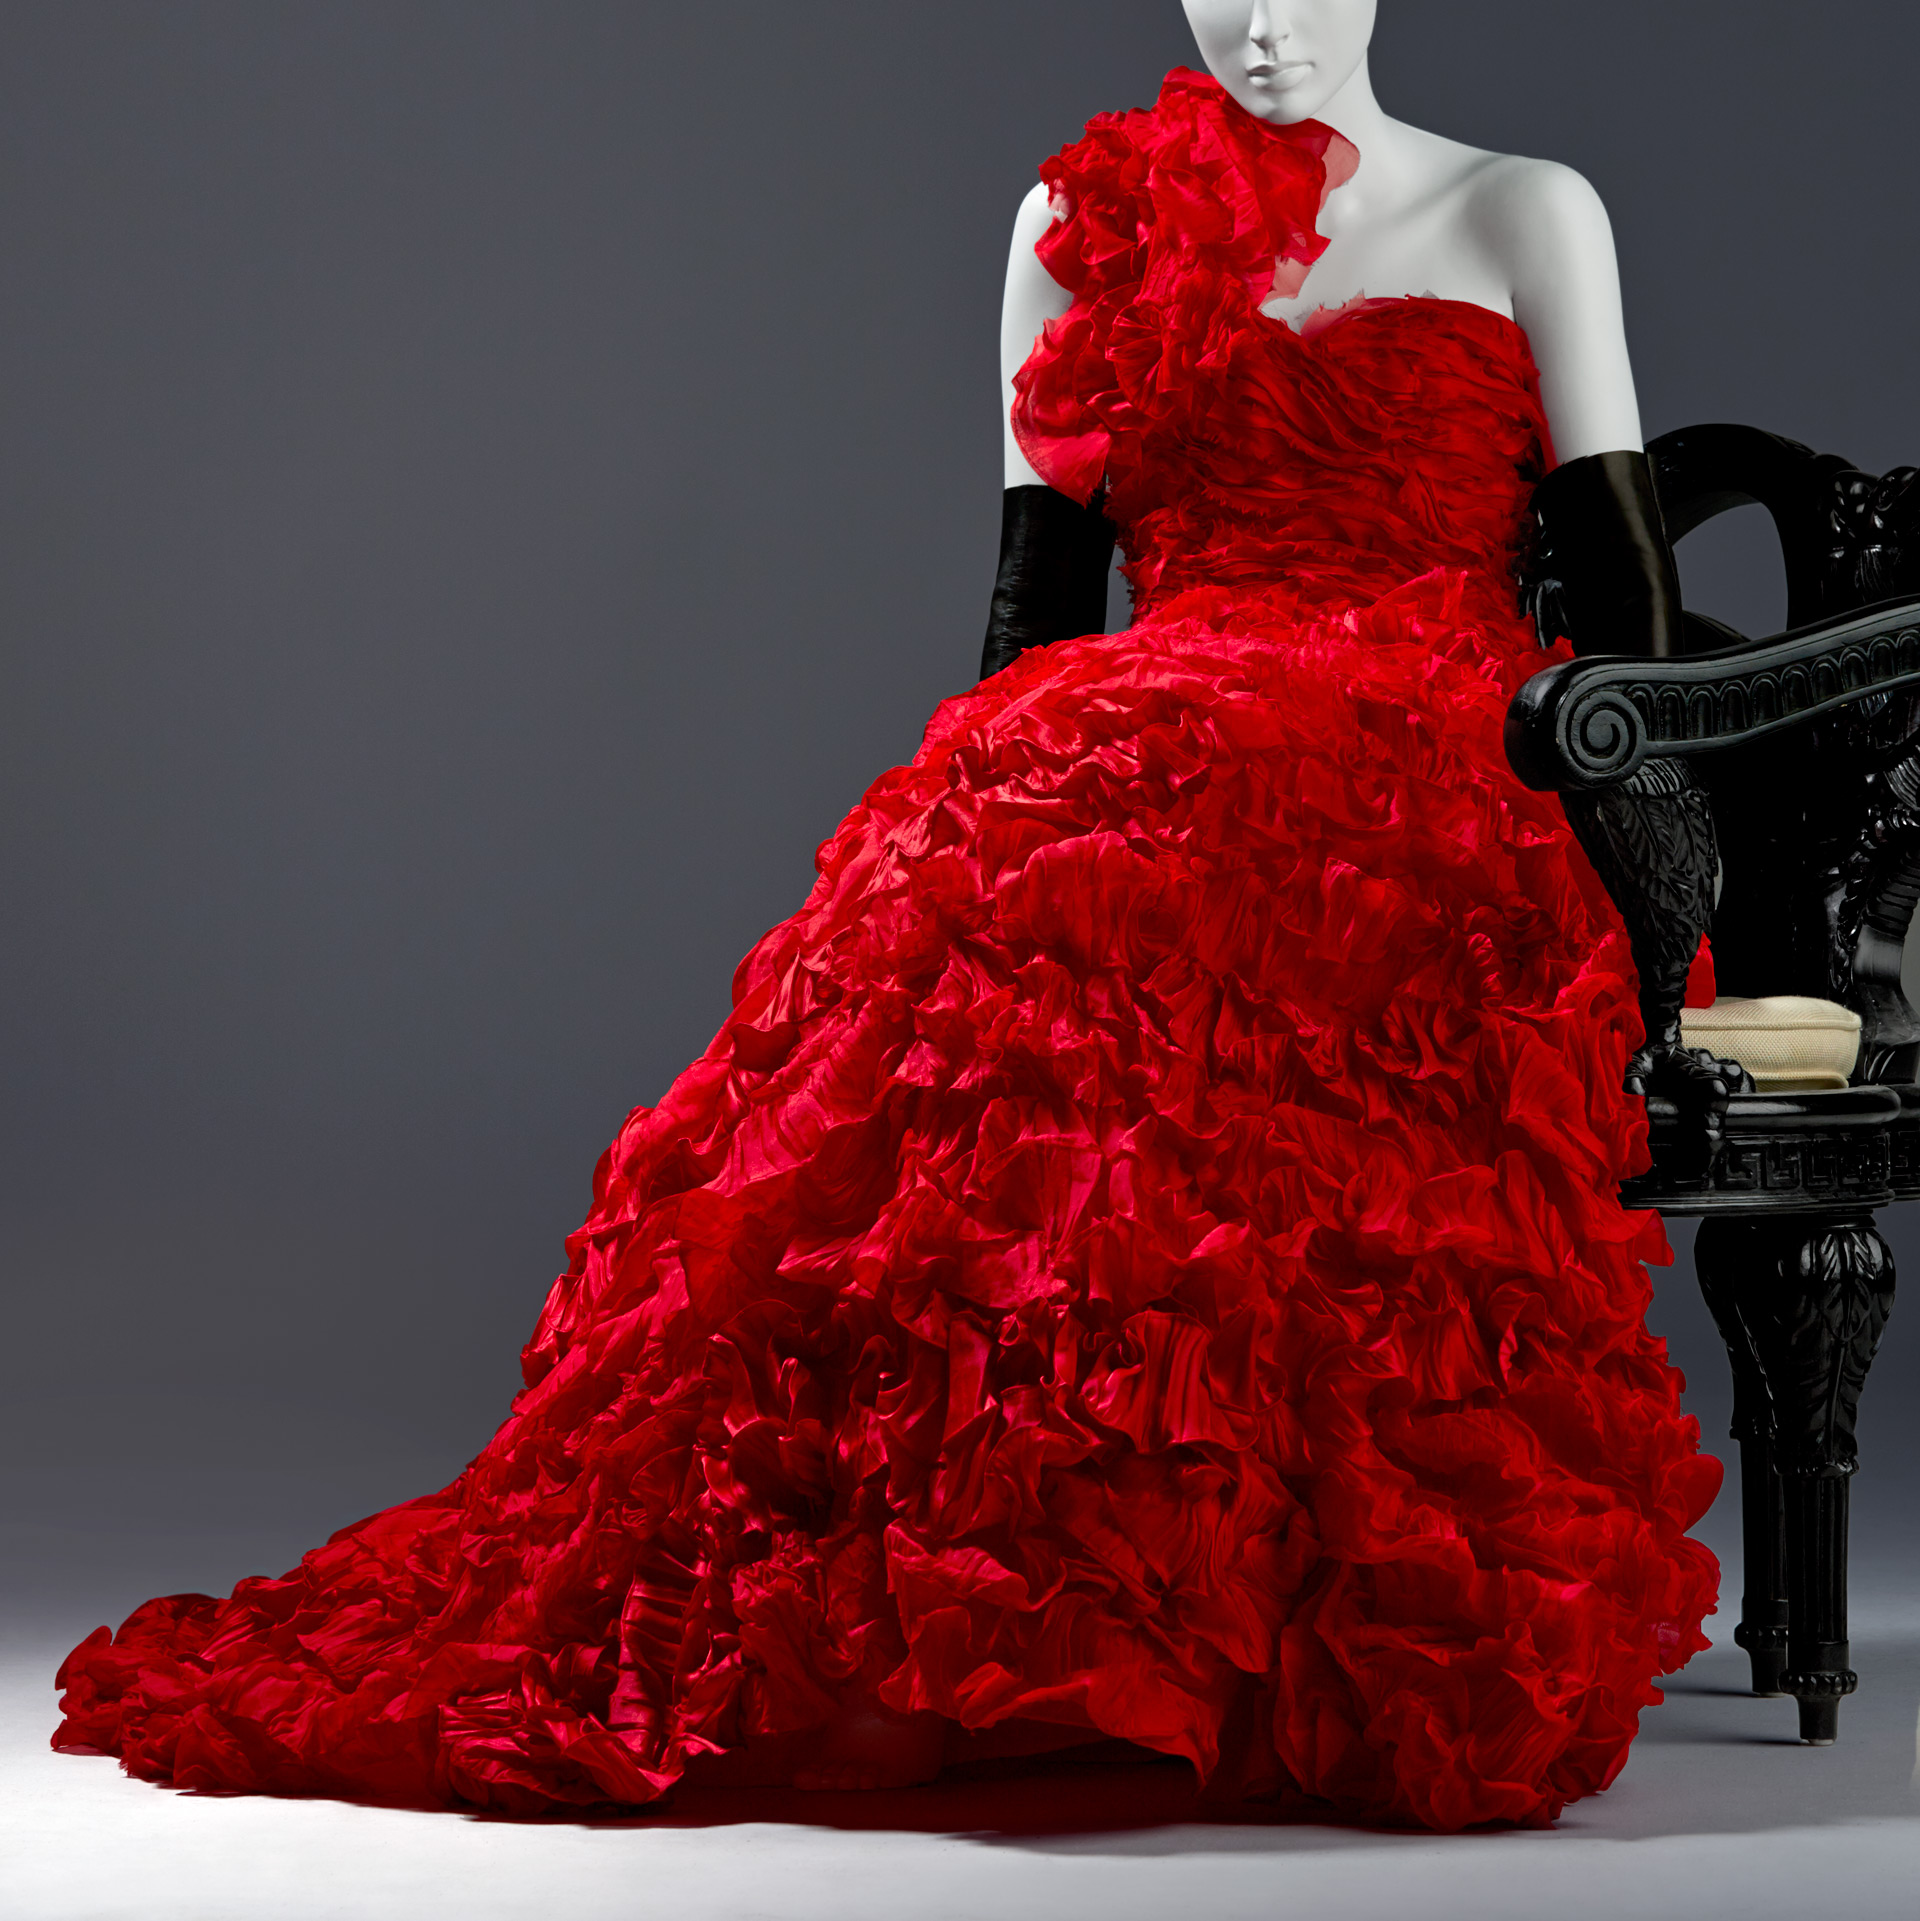 oscar de la renta exhibition presented at scad by andr233